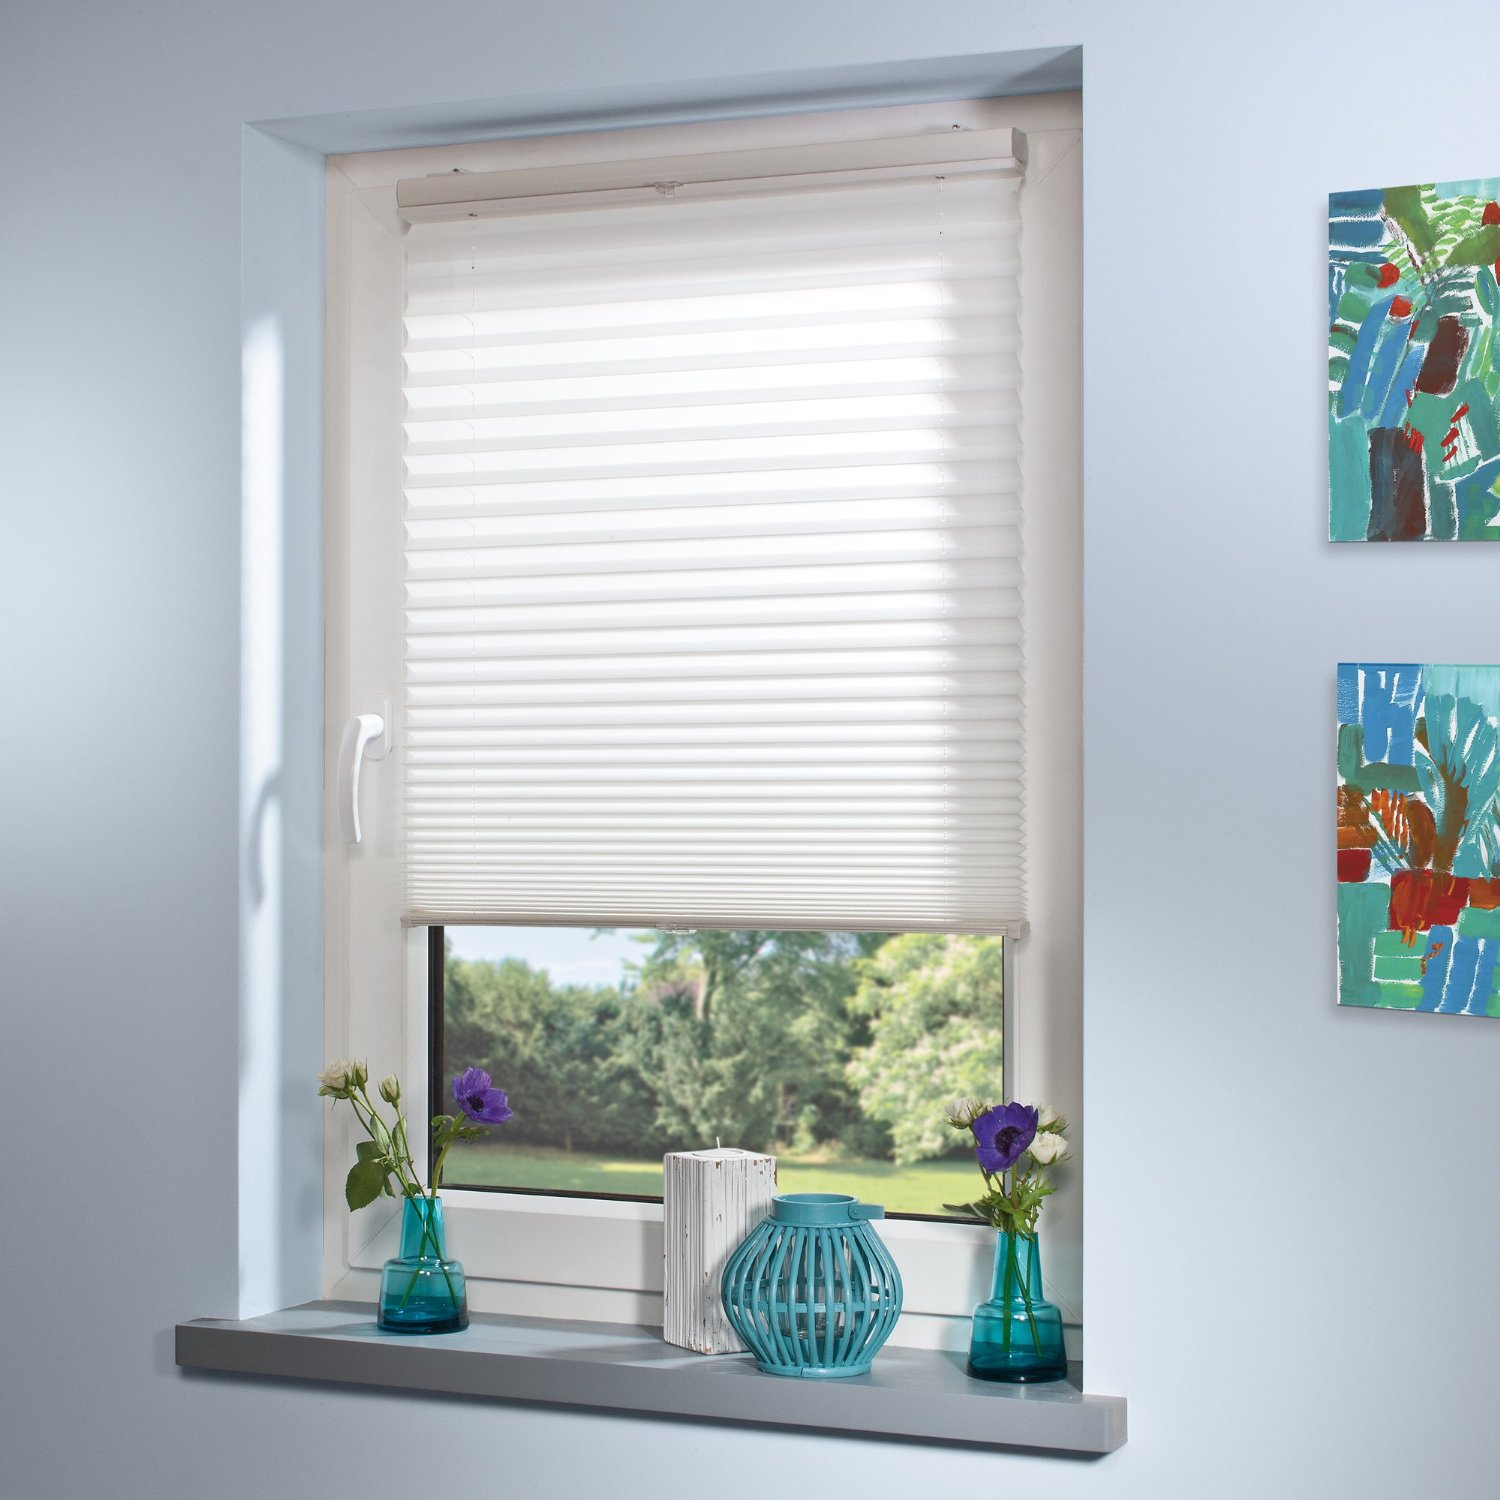 Ikea Jaloezieen Window Shades Ikea Effective Protection For Your